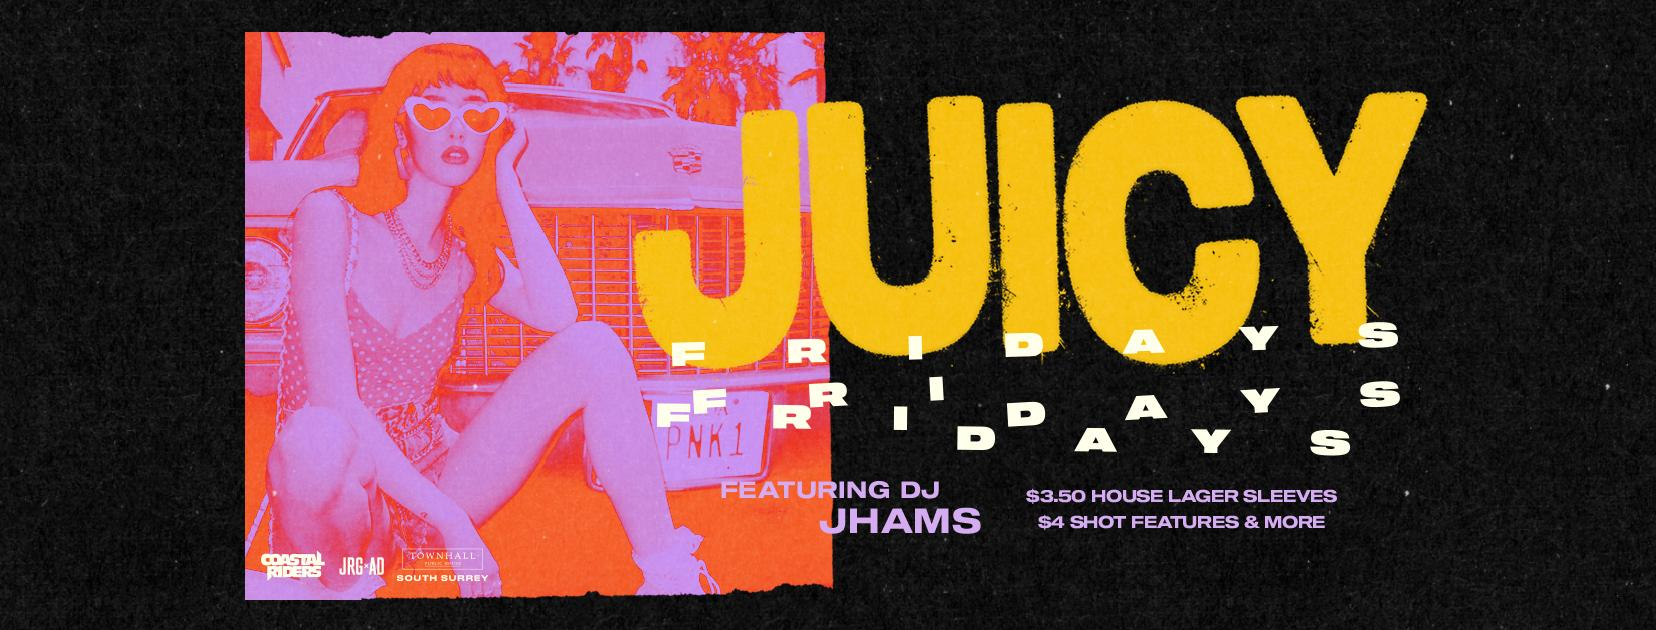 Juicy Friday at Townhall South Surrey